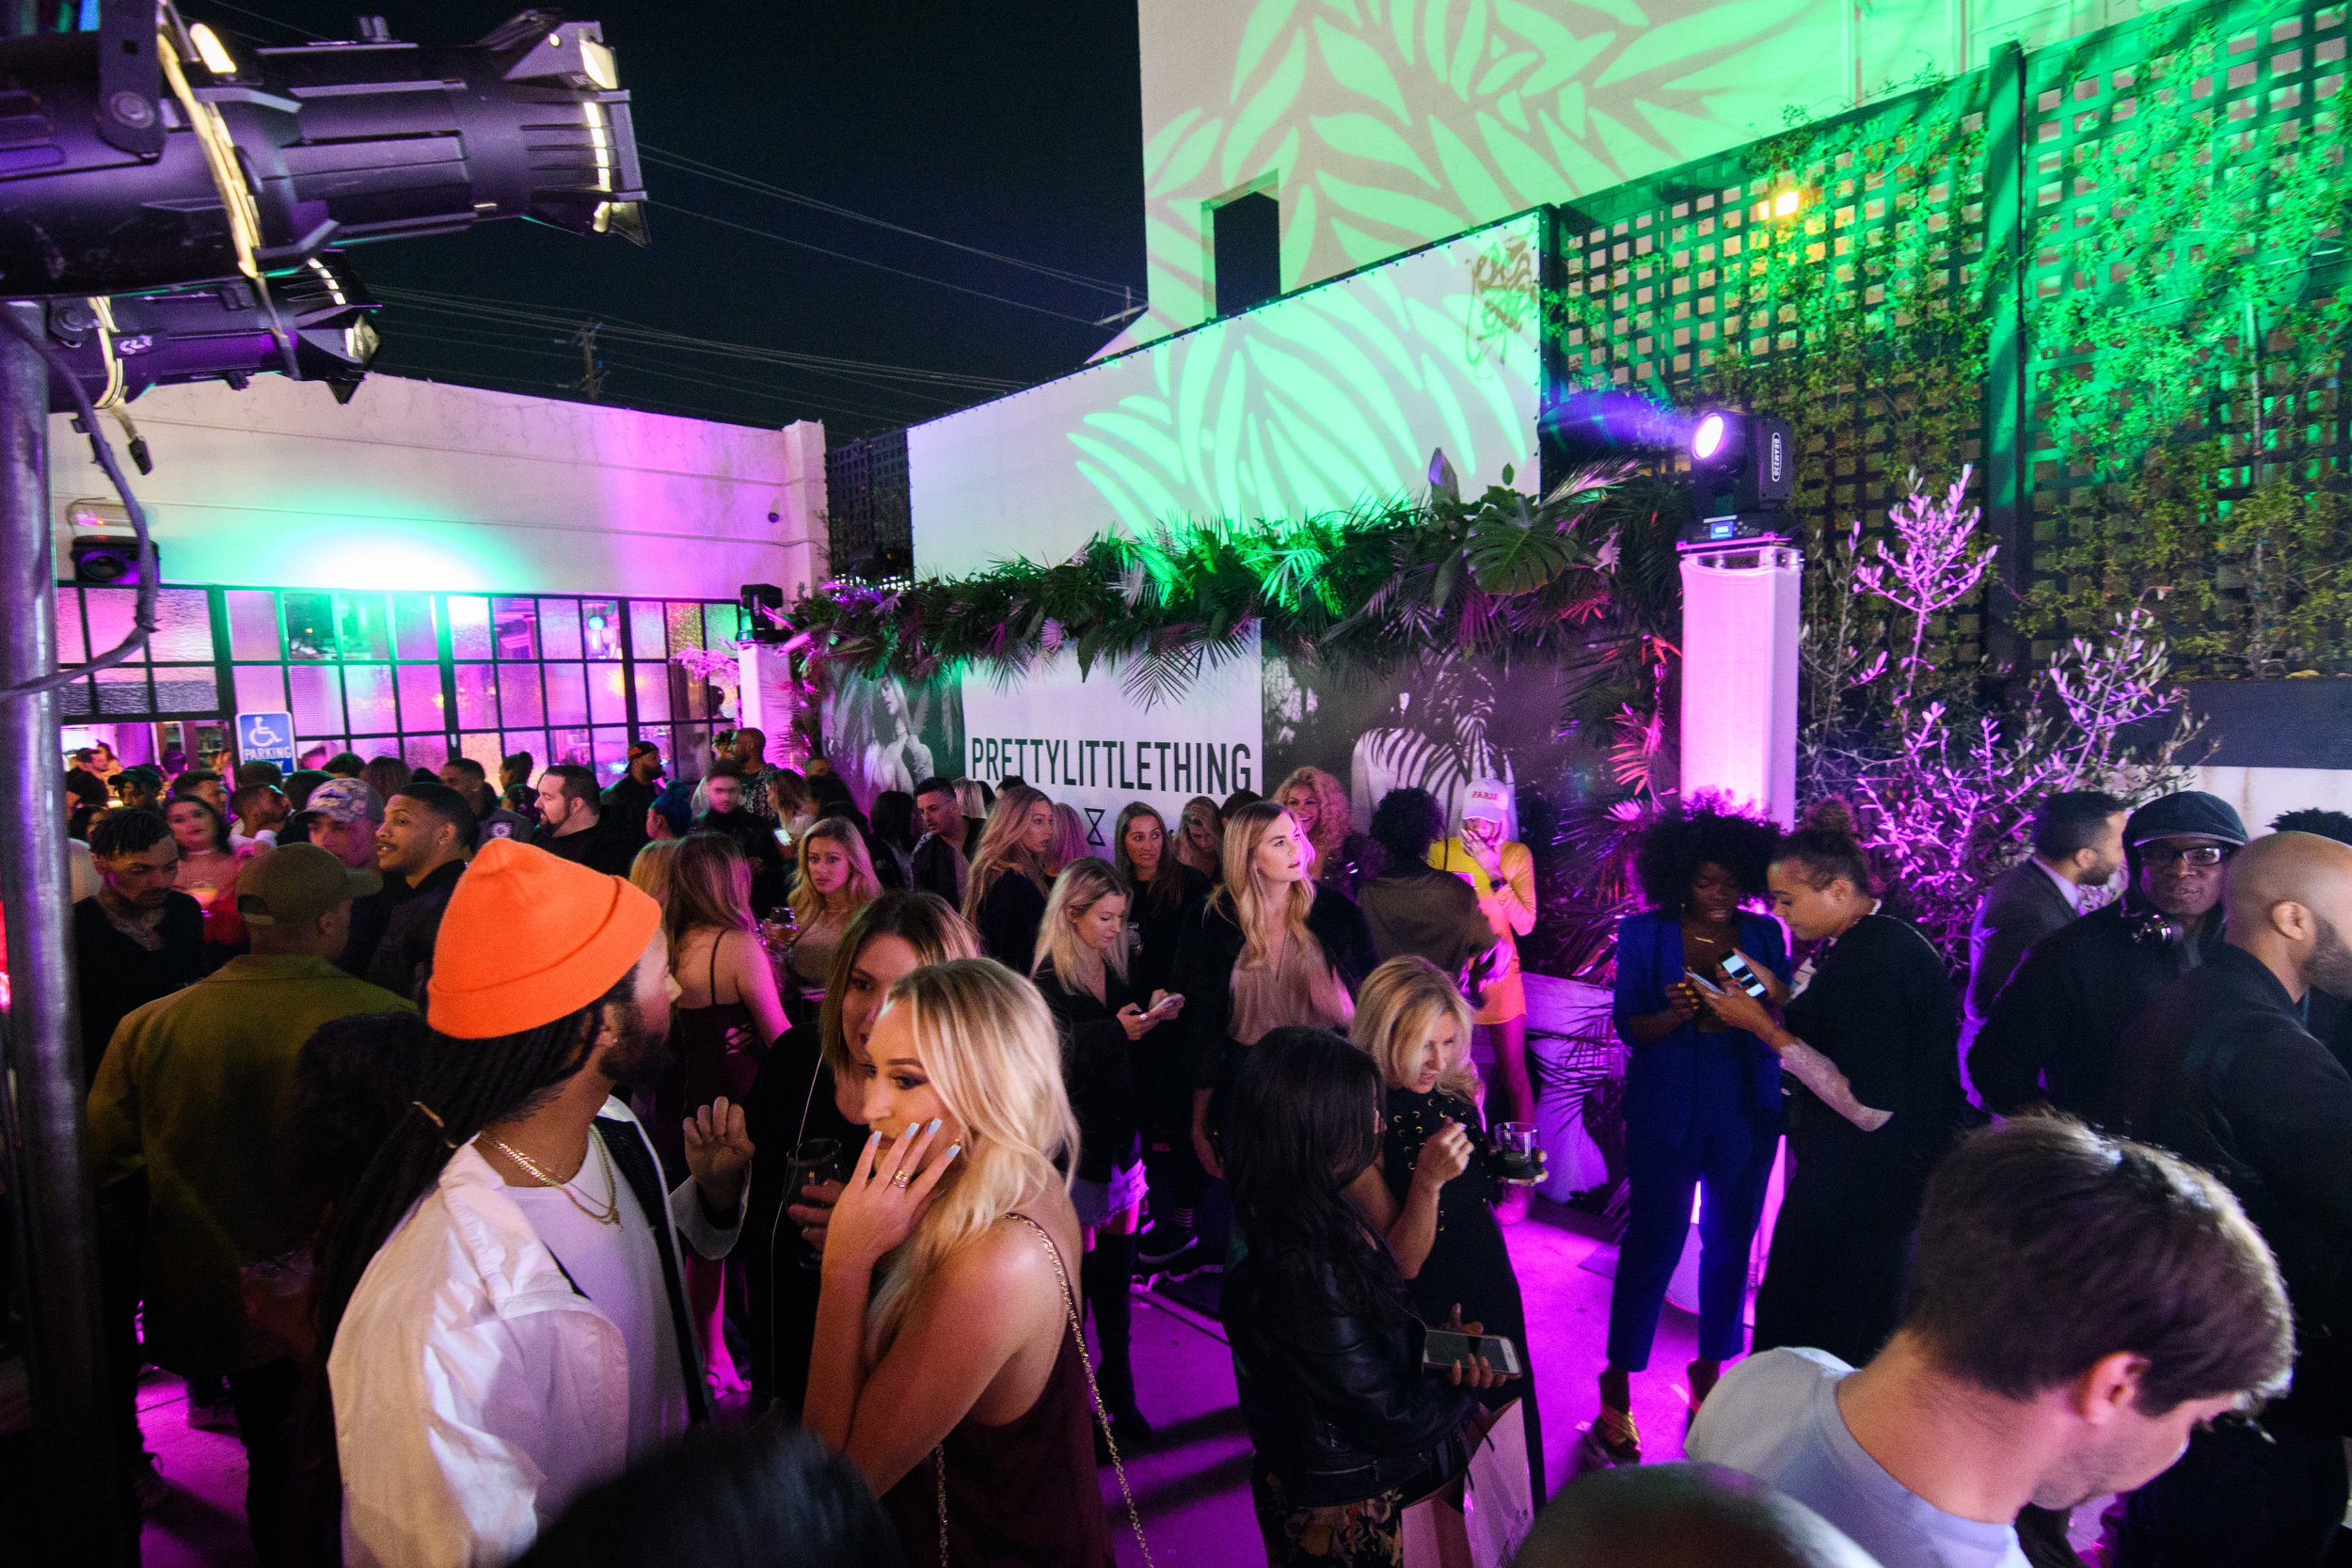 PrettyLittleThing New PLT Shape Collection with Stassie Celebrity Launch Party party outside The Phoenix LA.jpg